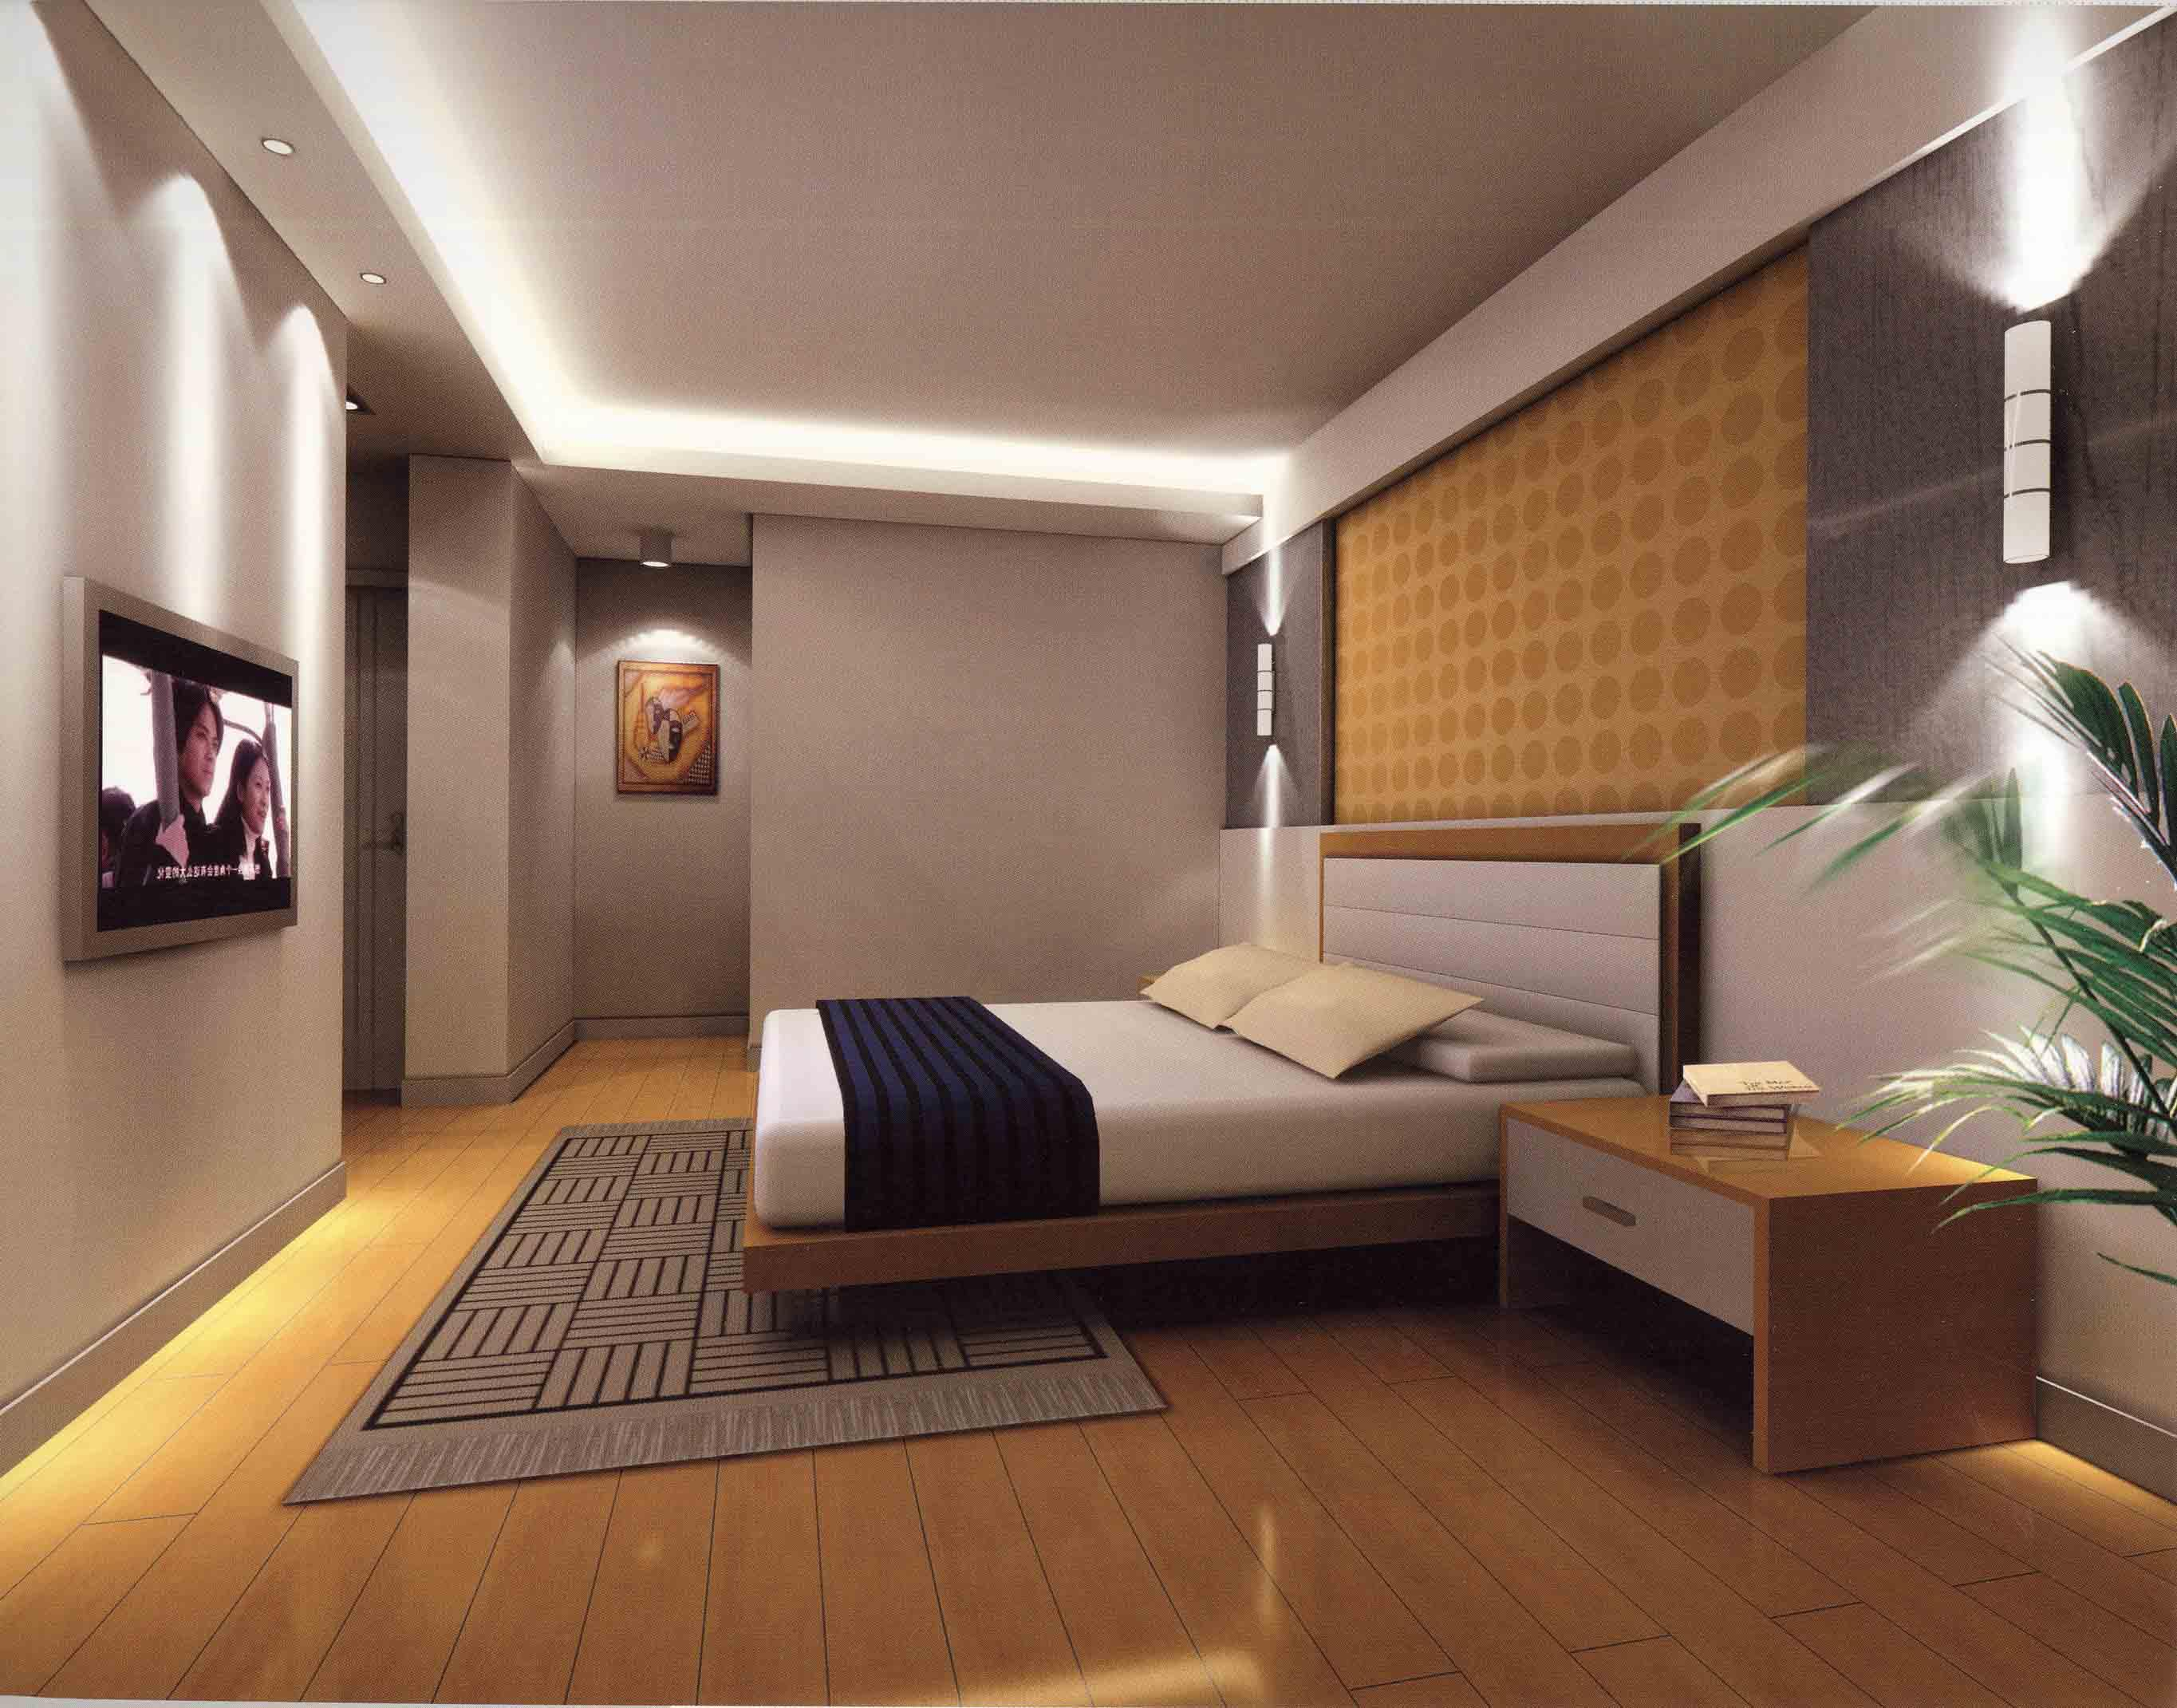 25 cool bedroom designs collection - Bedrooms designs ...